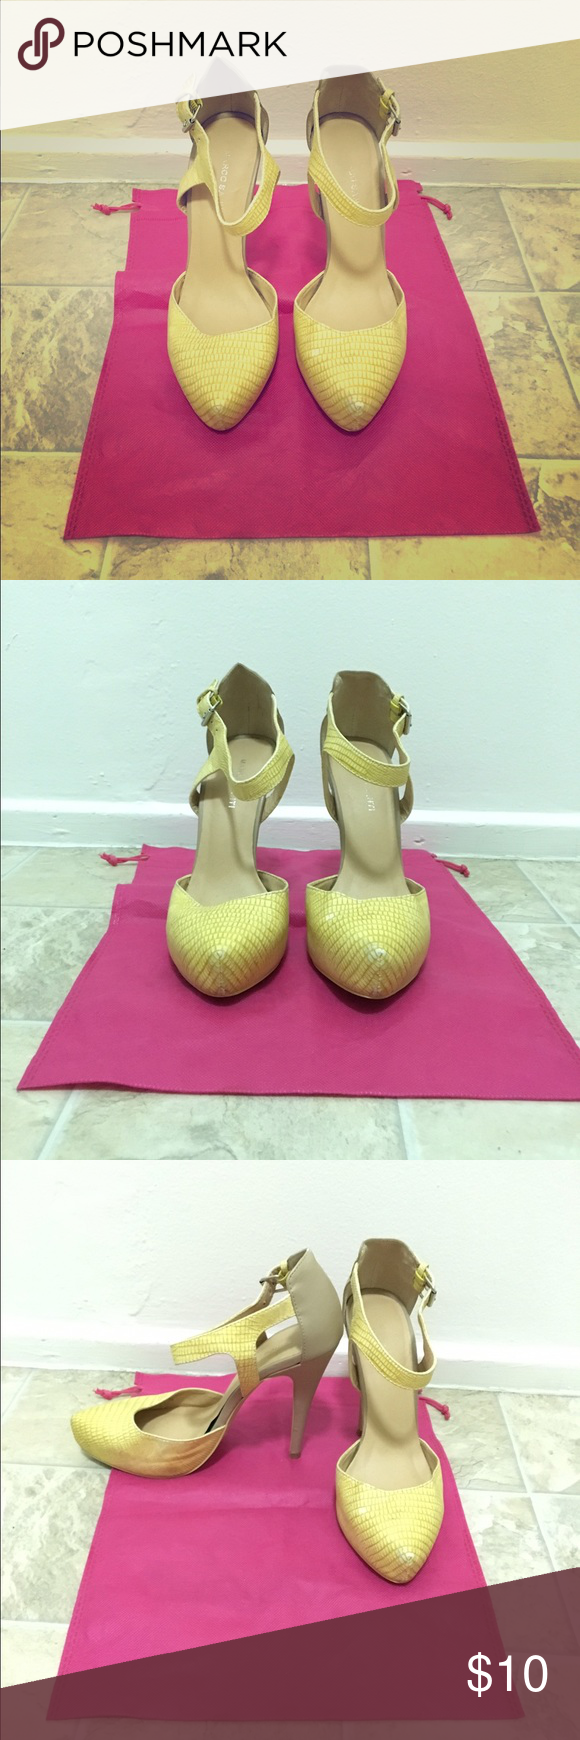 Marco santi Marco santi yellow pumps. Great pop of color with cute outfit. Marco Santi Shoes Heels